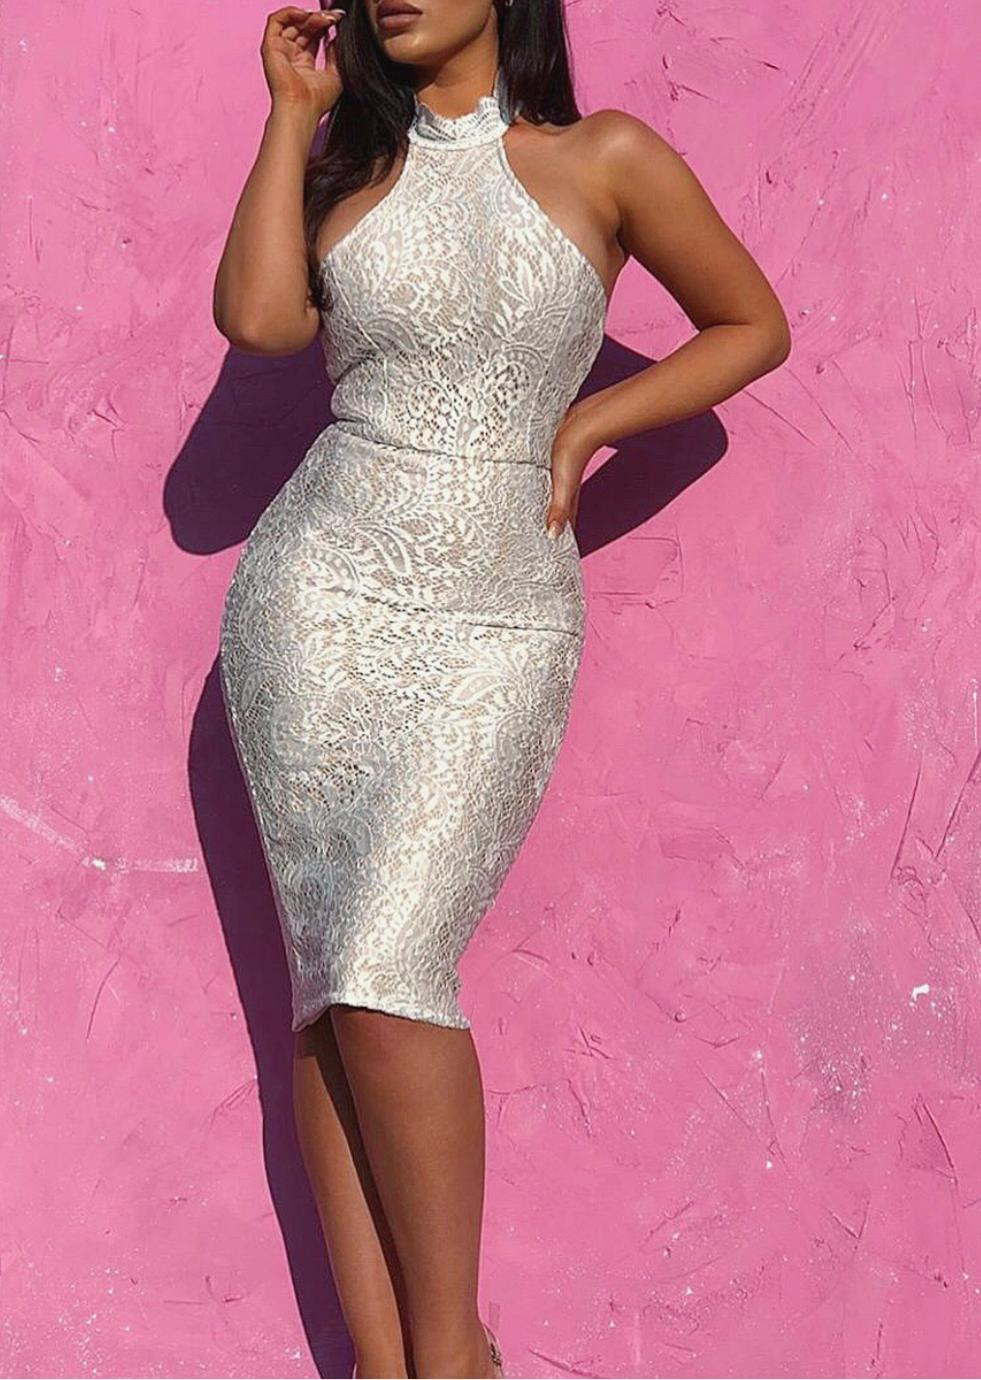 ANKARA - white lace bandage dress